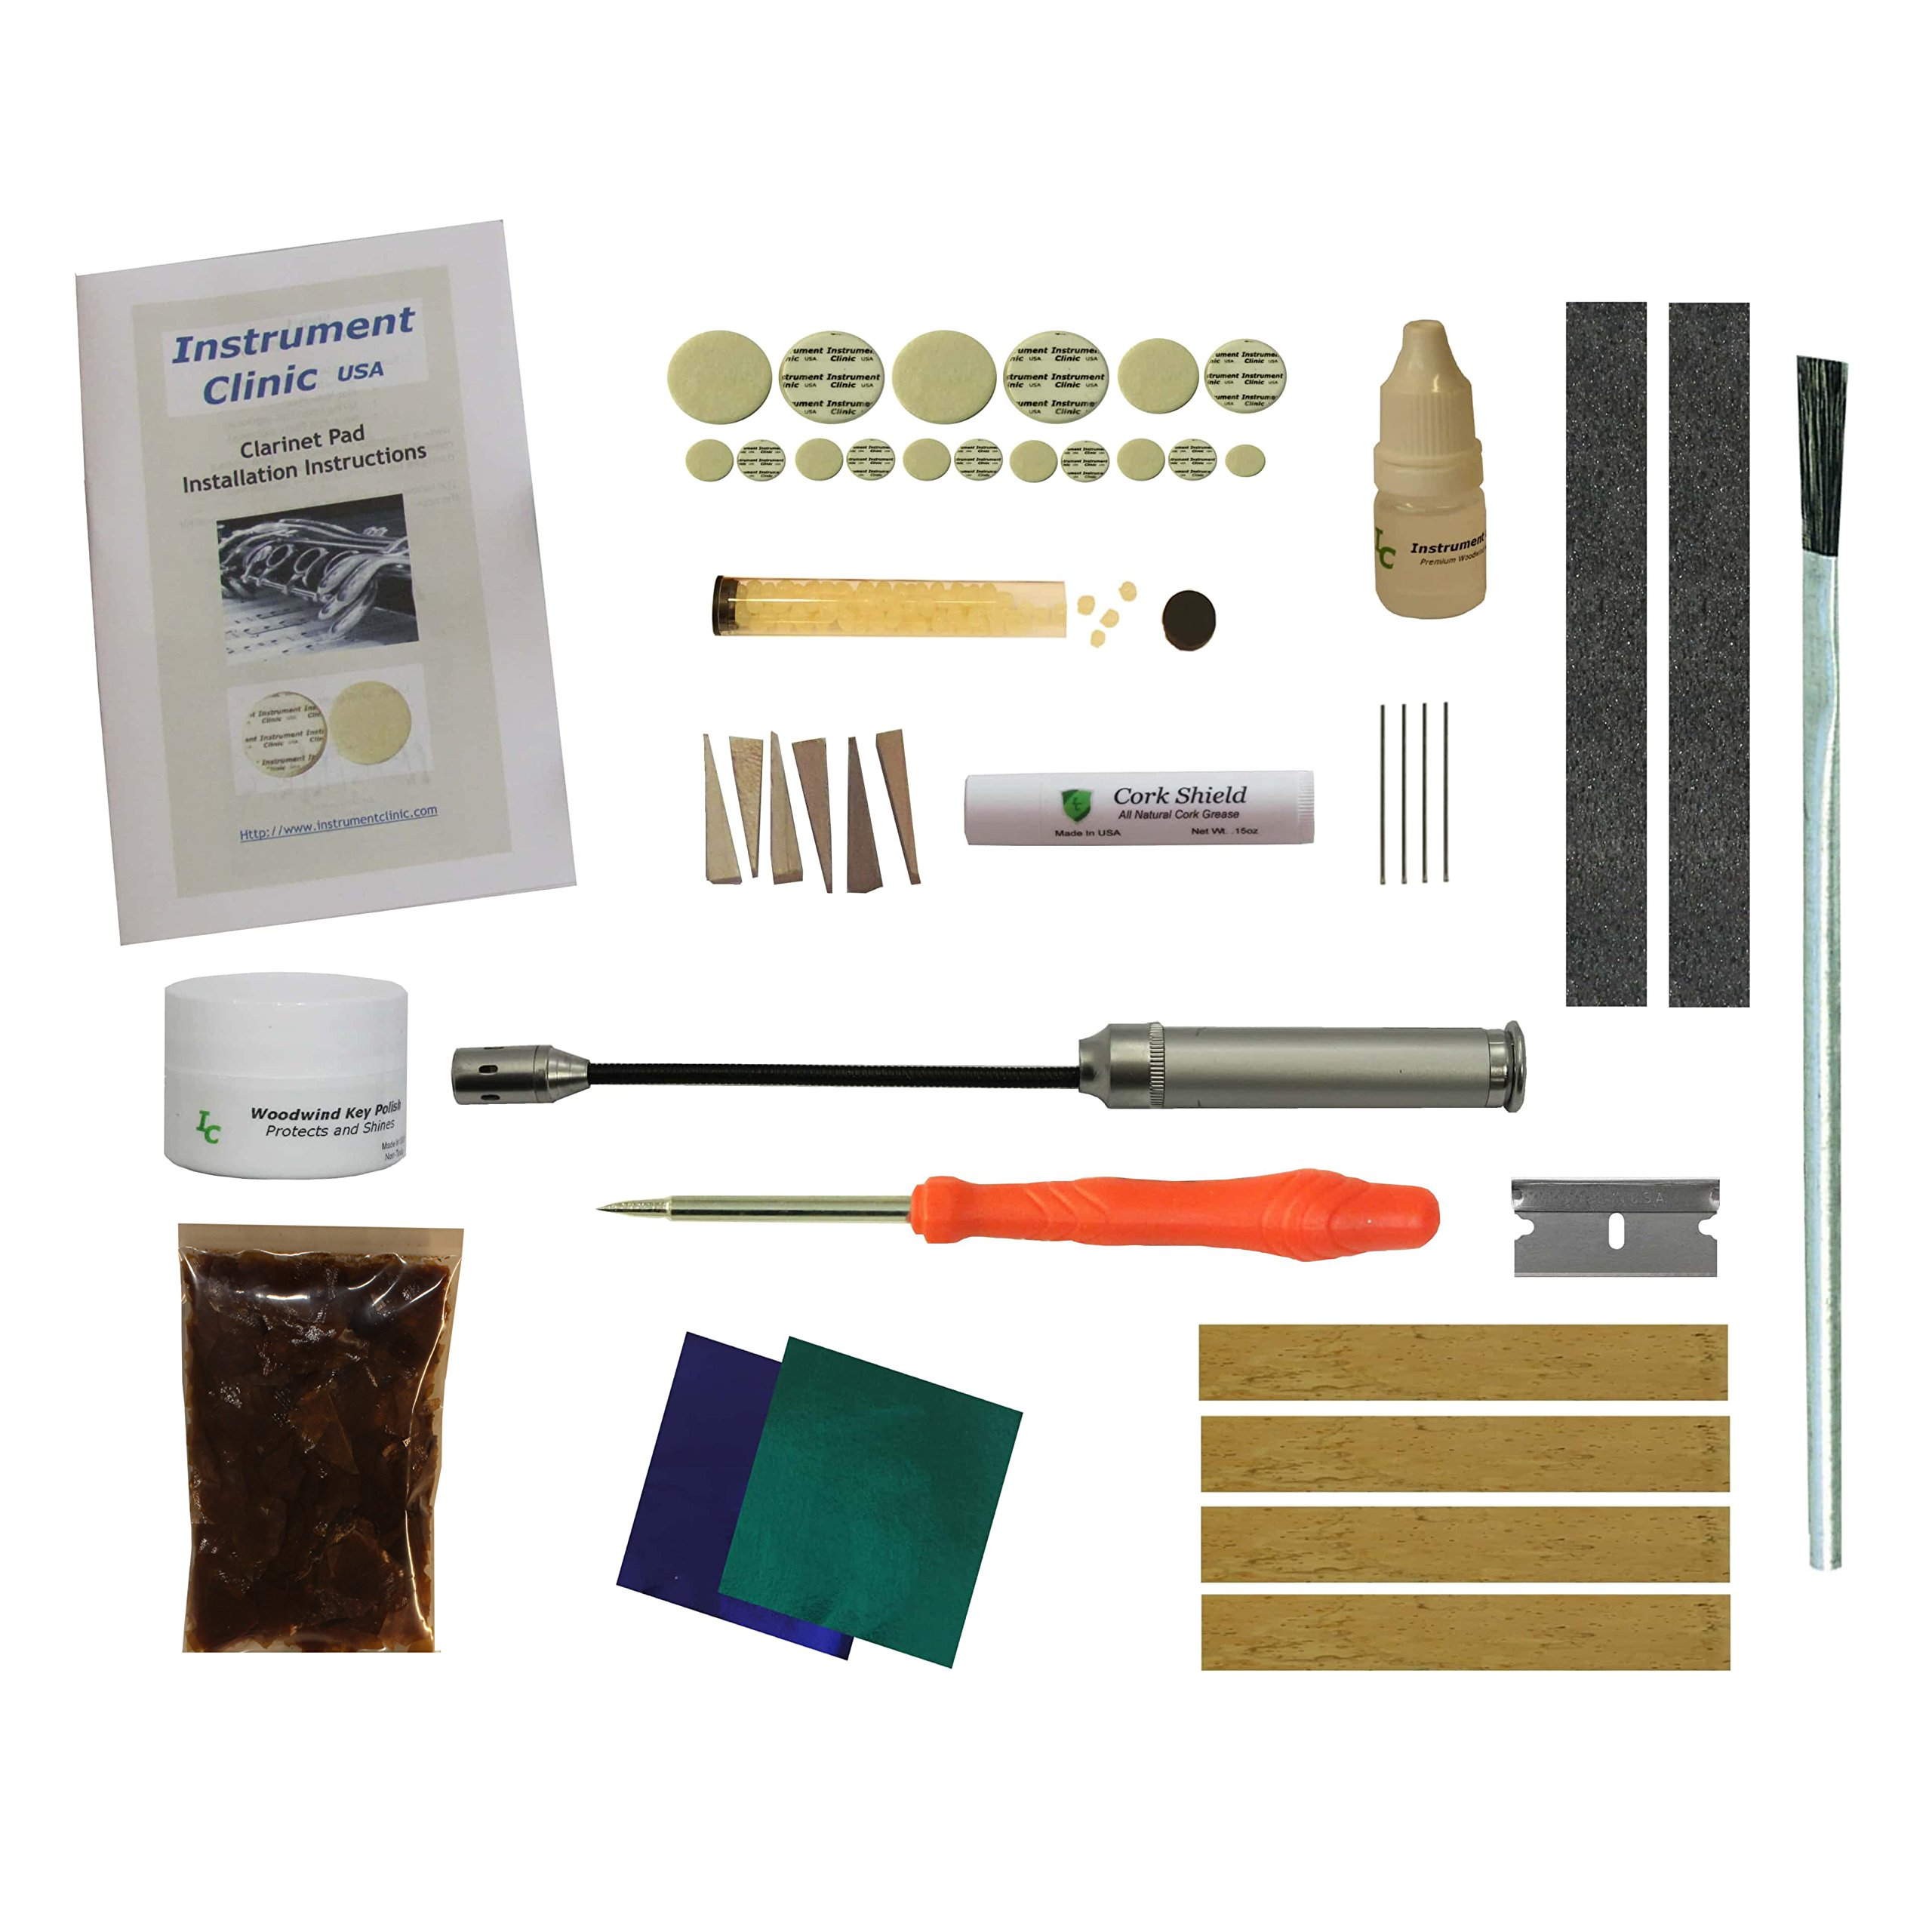 Instrument Clinic Clarinet Pad / Tenon Cork Kit, Set for Artley Clarinets